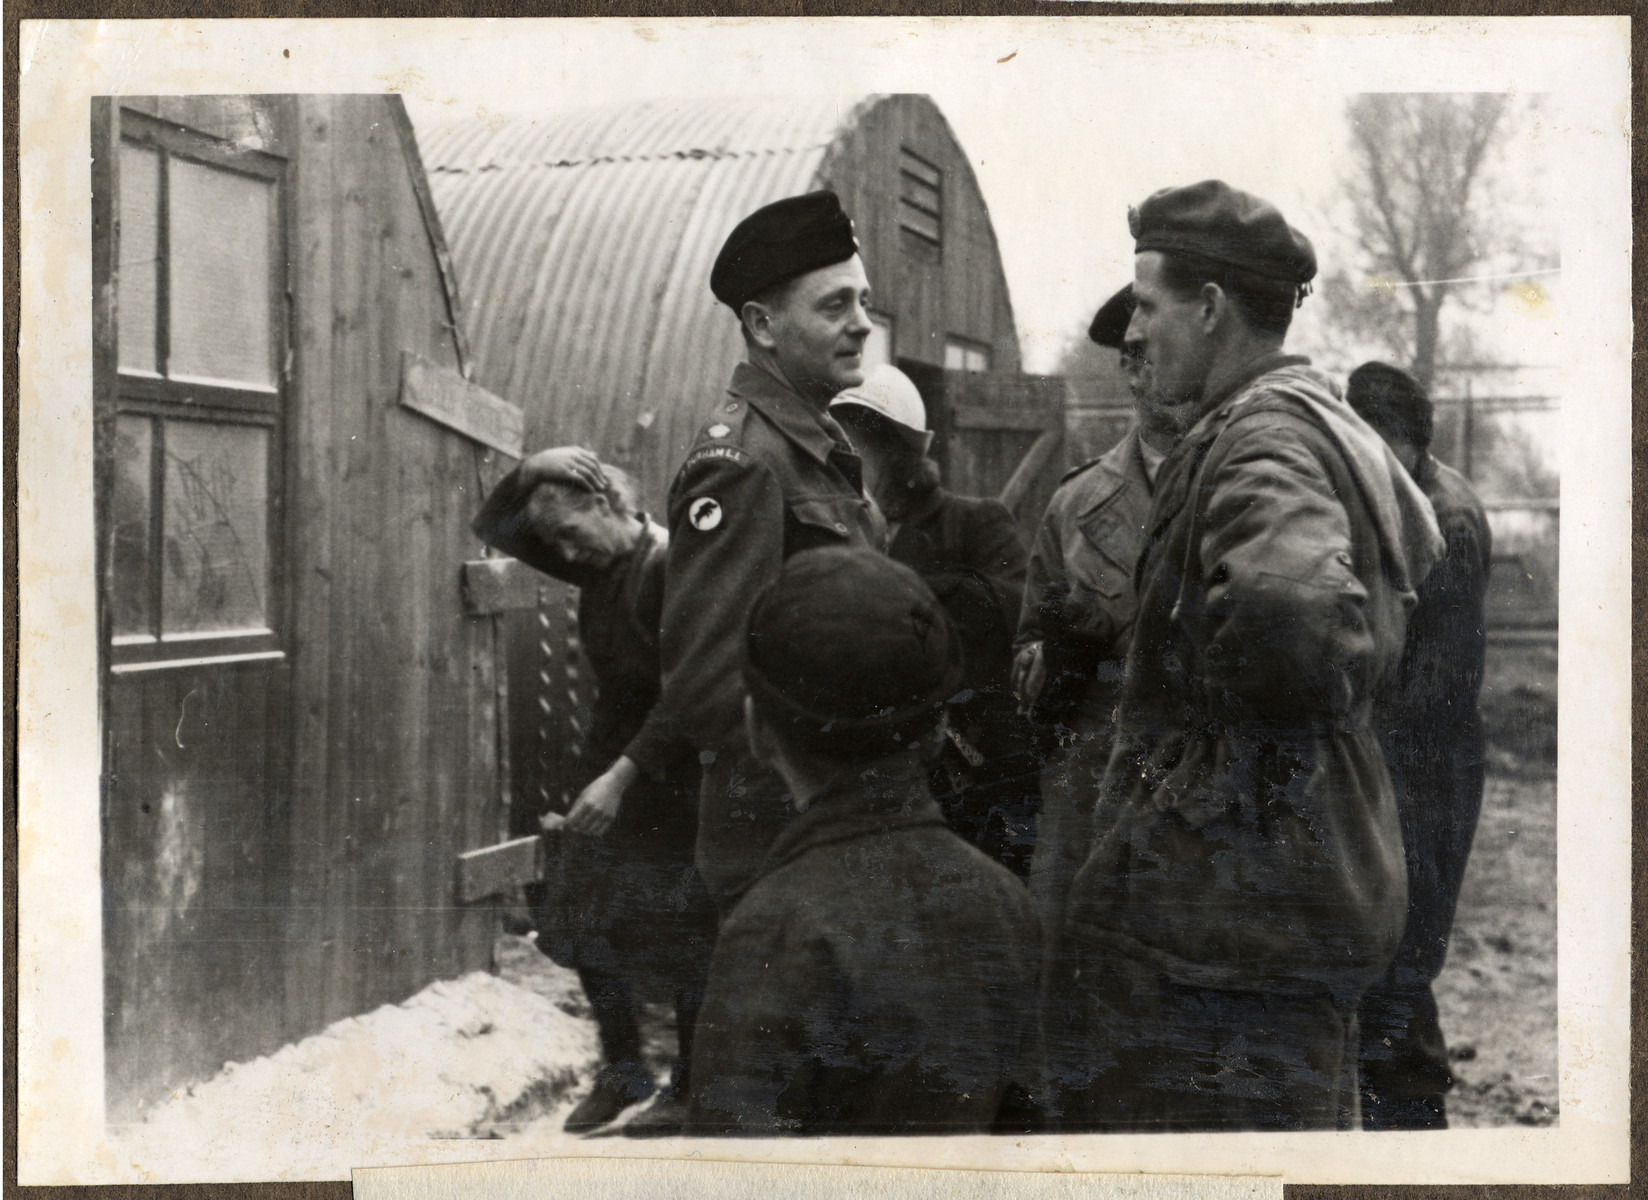 The British commandant of an unidentified British displaced persons' camp talks to another soldier outside a Quonset Hut.